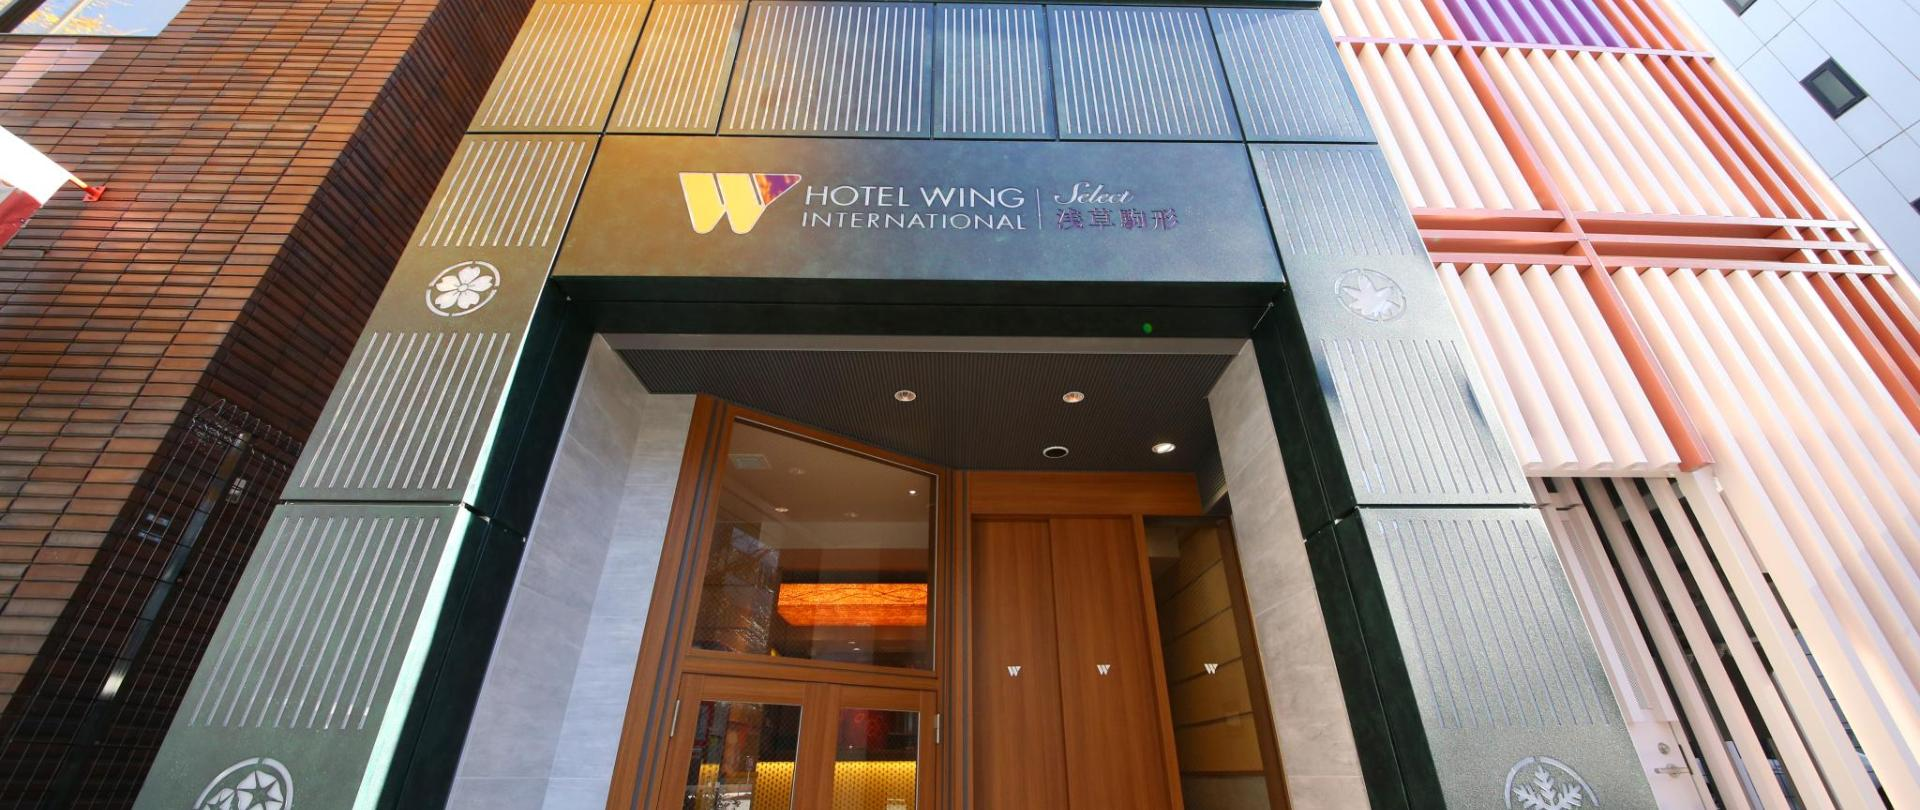 Hotel Wing International Pilih Asakusa Komagata